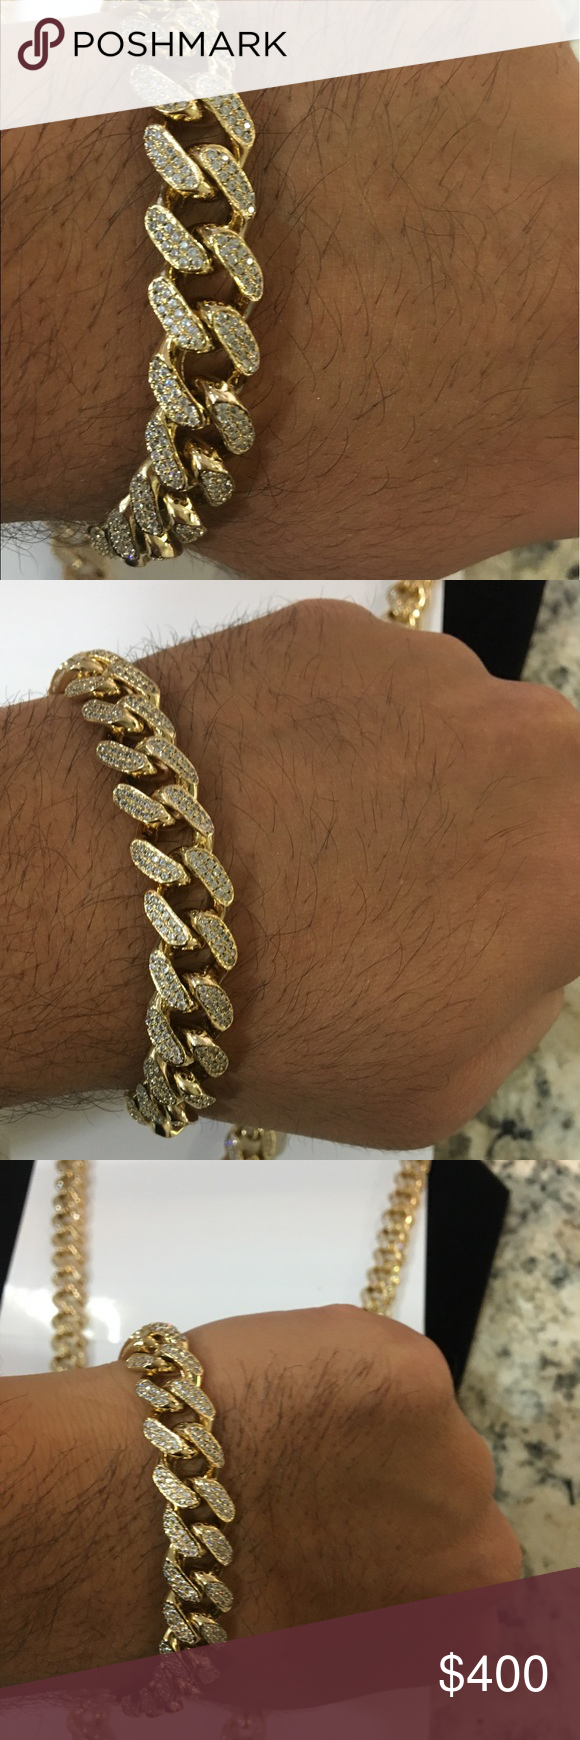 K gold filled iced out cubic zirconia diamonds chain and bracelet